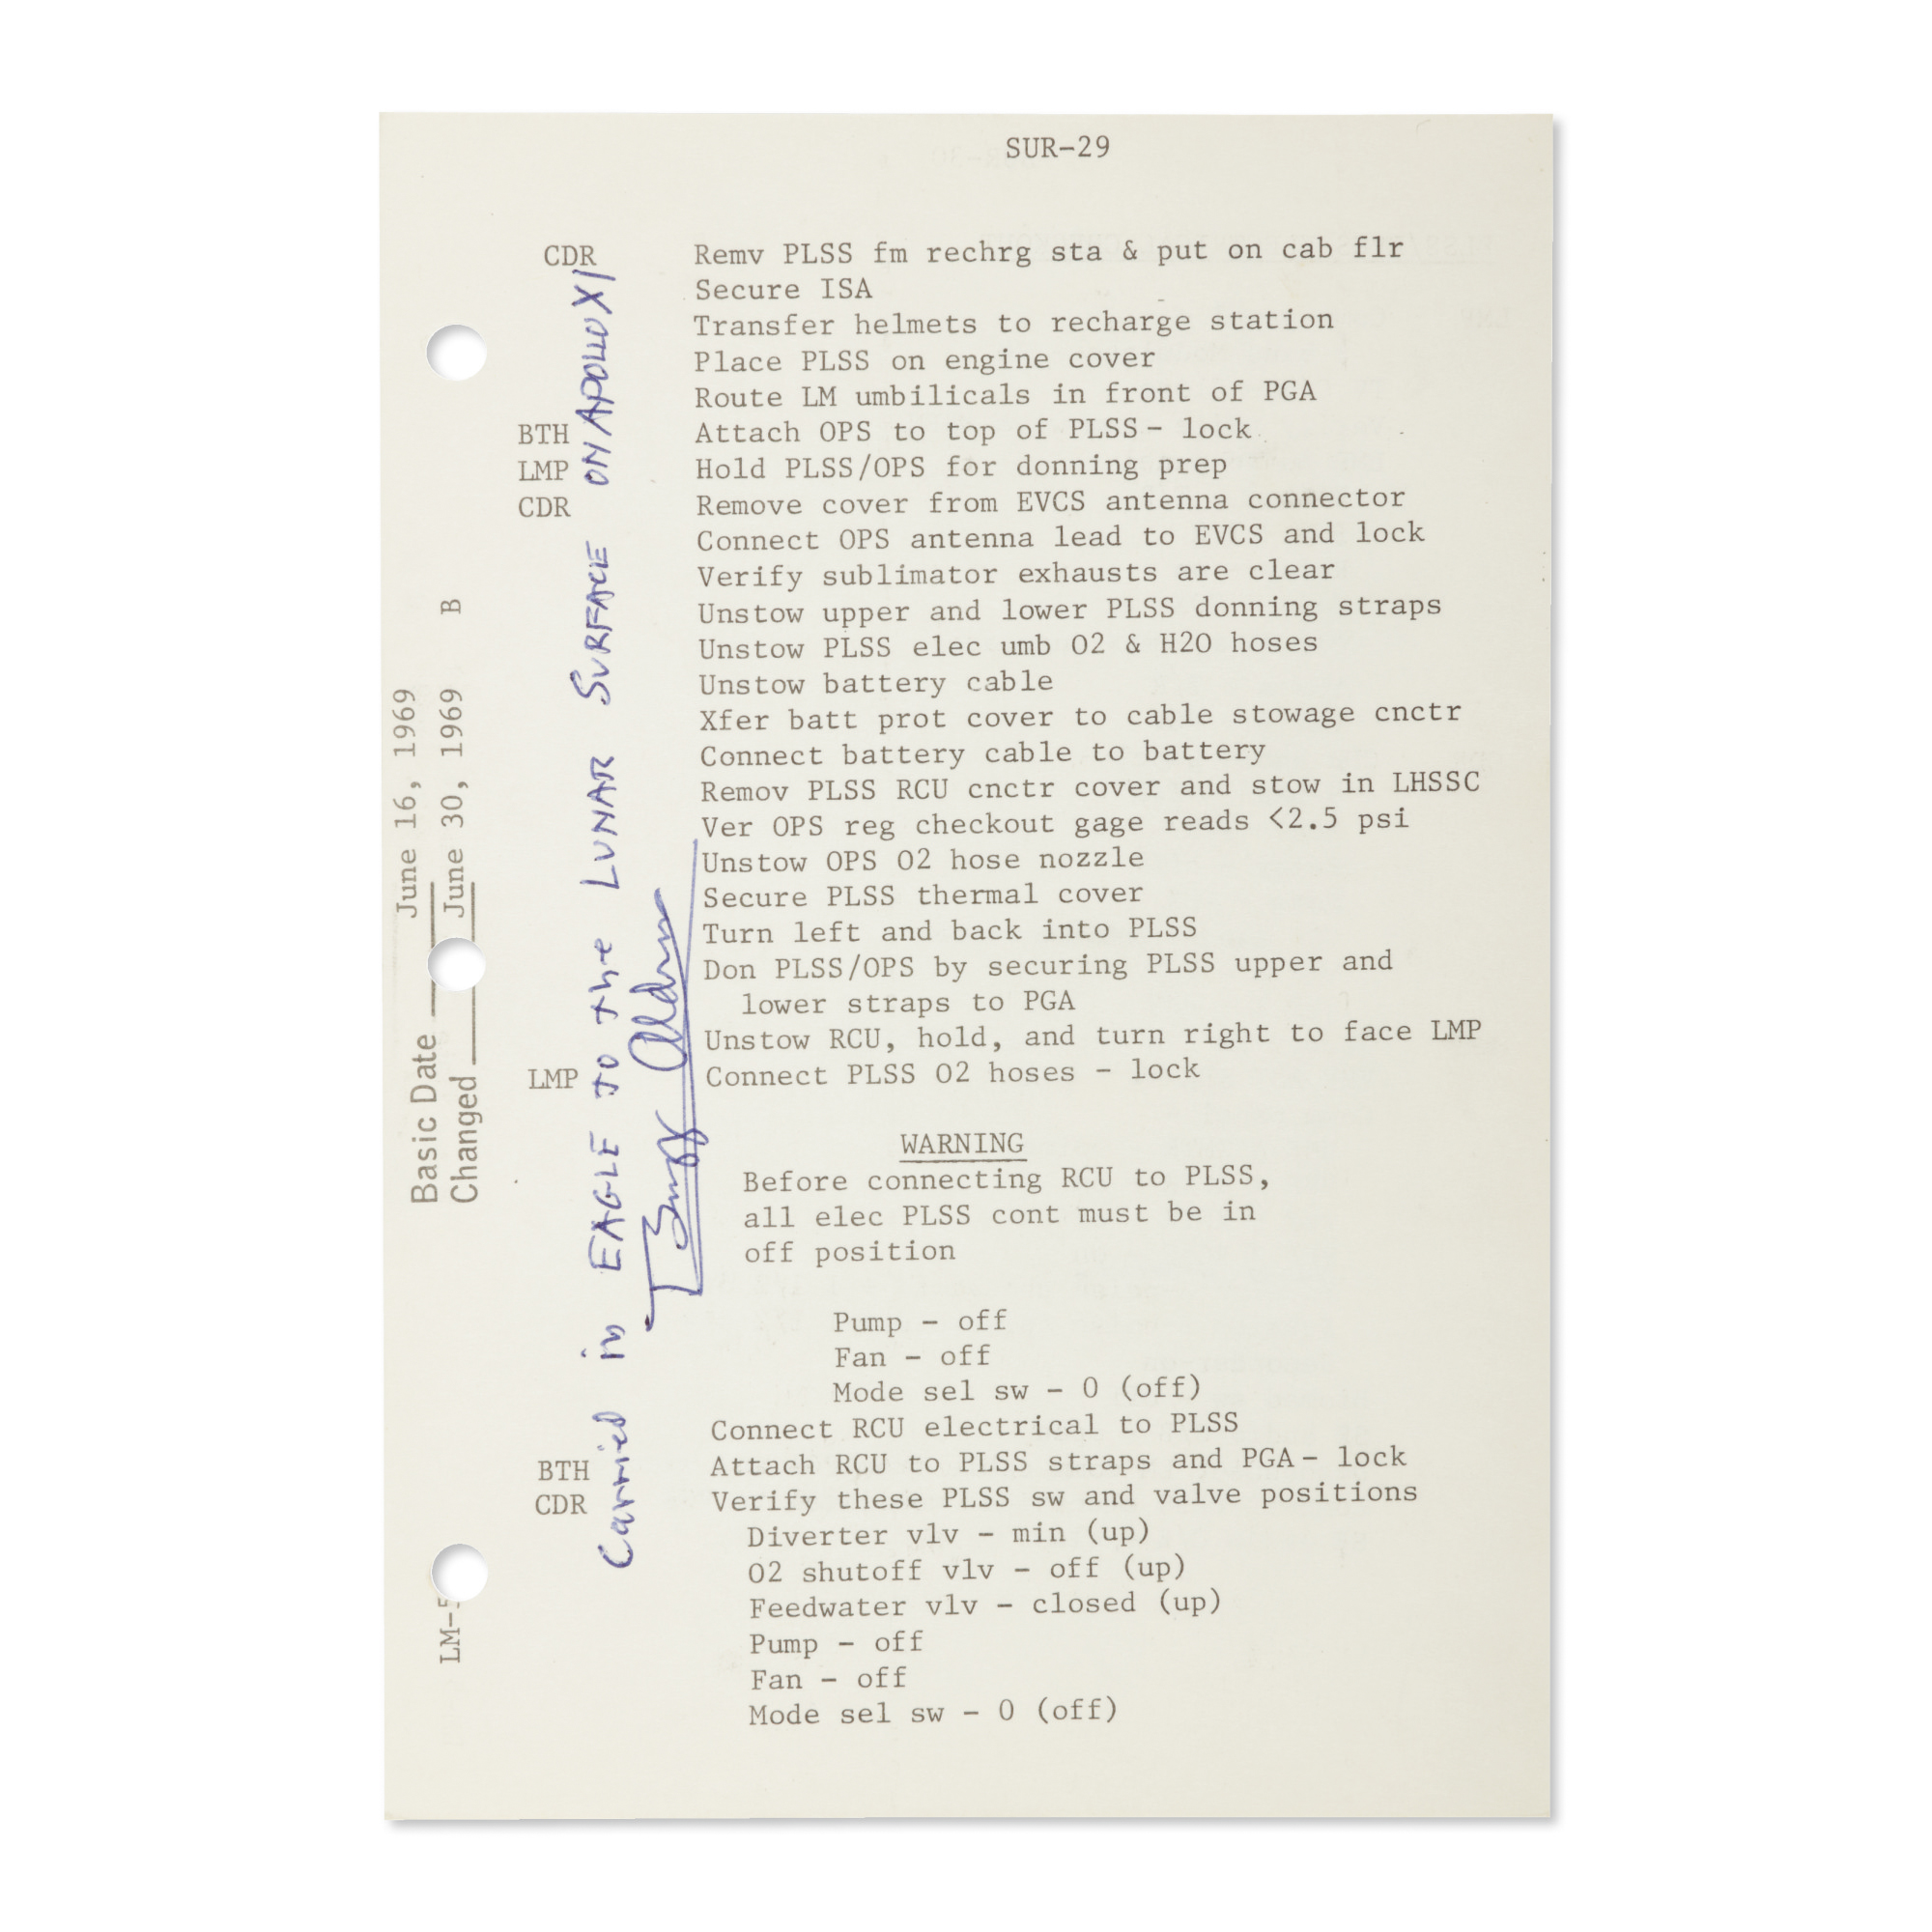 [APOLLO 11]. LUNAR SURFACE FLOWN, APOLLO 11 CHECKLIST SHEET USED ON THE...